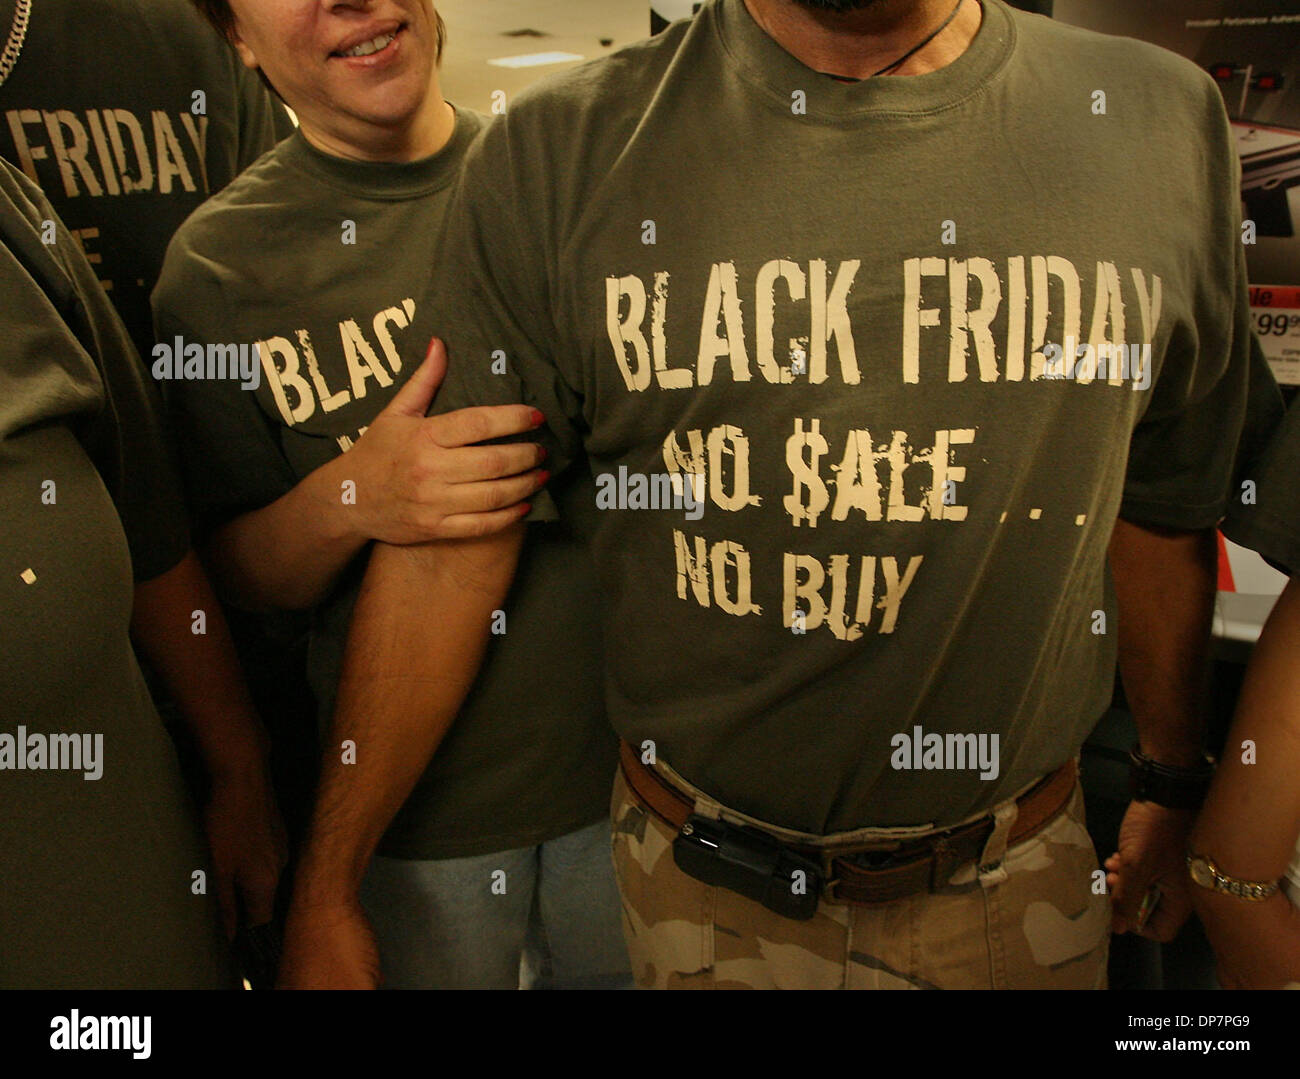 Nov 24, 2006; Boynton Beach, FL, USA; Joann and J.C. Gomez of Miami, at the Sears at the Boynton Beach Mall, just moments after the store opened at 5 a.m. They and their extended families were wearing matching t-shirts as the hit the stores at 5 a.m.  Mandatory Credit: Photo by Bob Shanley/Palm Beach Post/ZUMA Press. (©) Copyright 2006 by Palm Beach Post - Stock Image